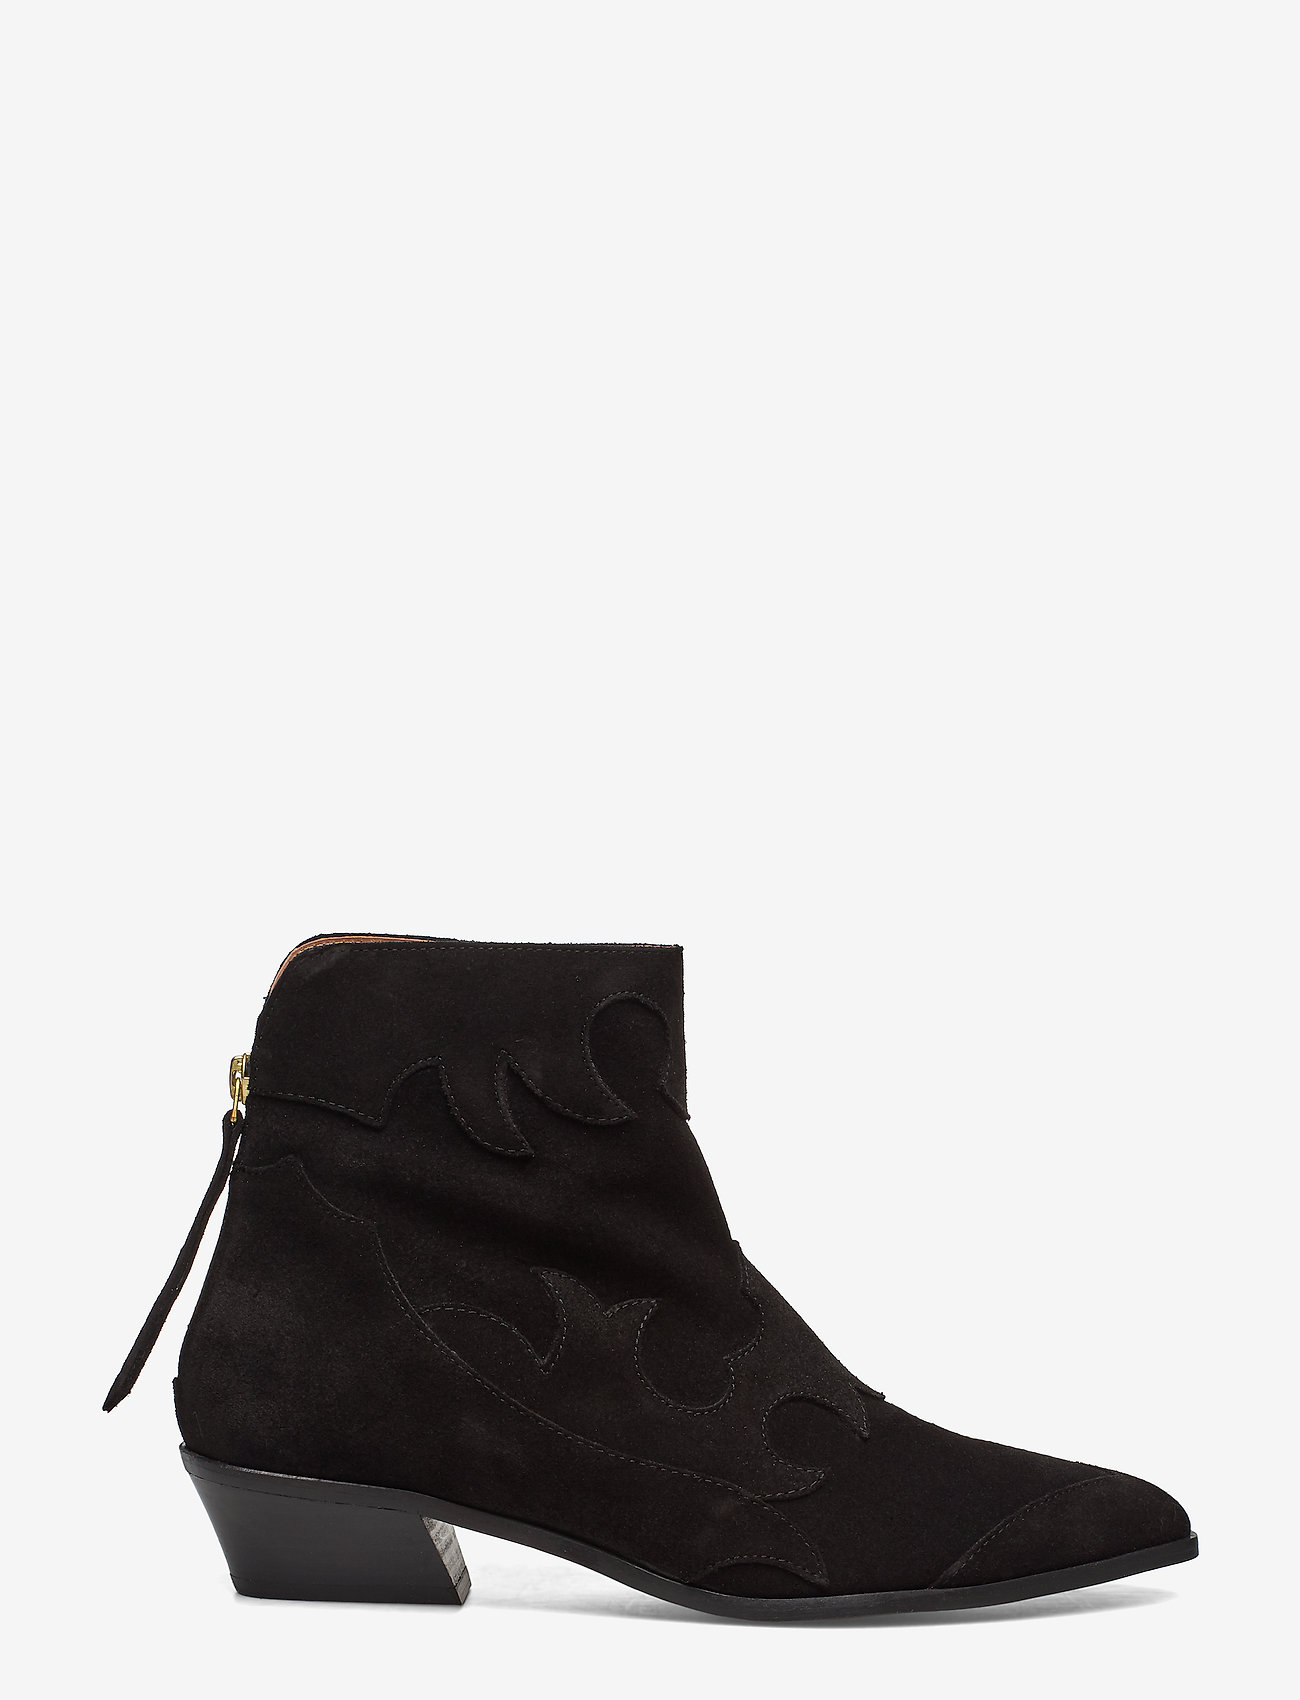 Stb-miquita S (Black) - Shoe The Bear THpJaY